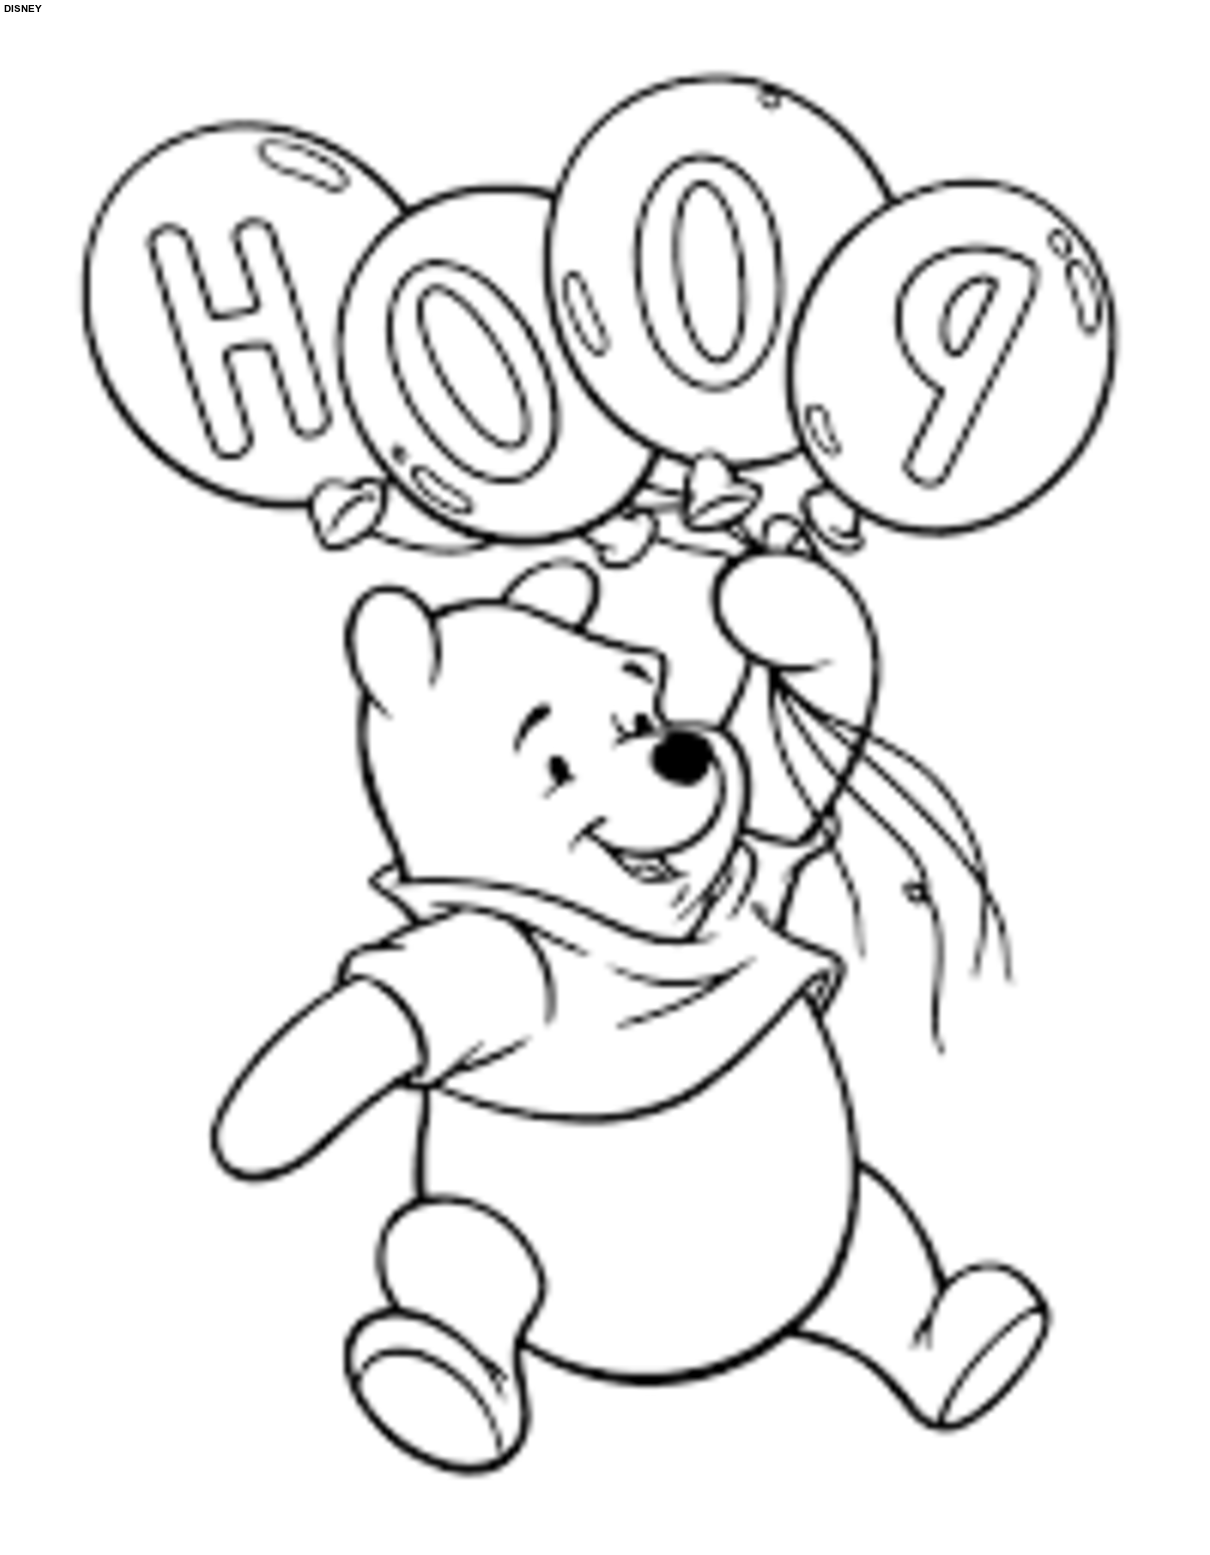 disney coloring pagesdisney colouring pagescolouring in disneydisney coloring pages to